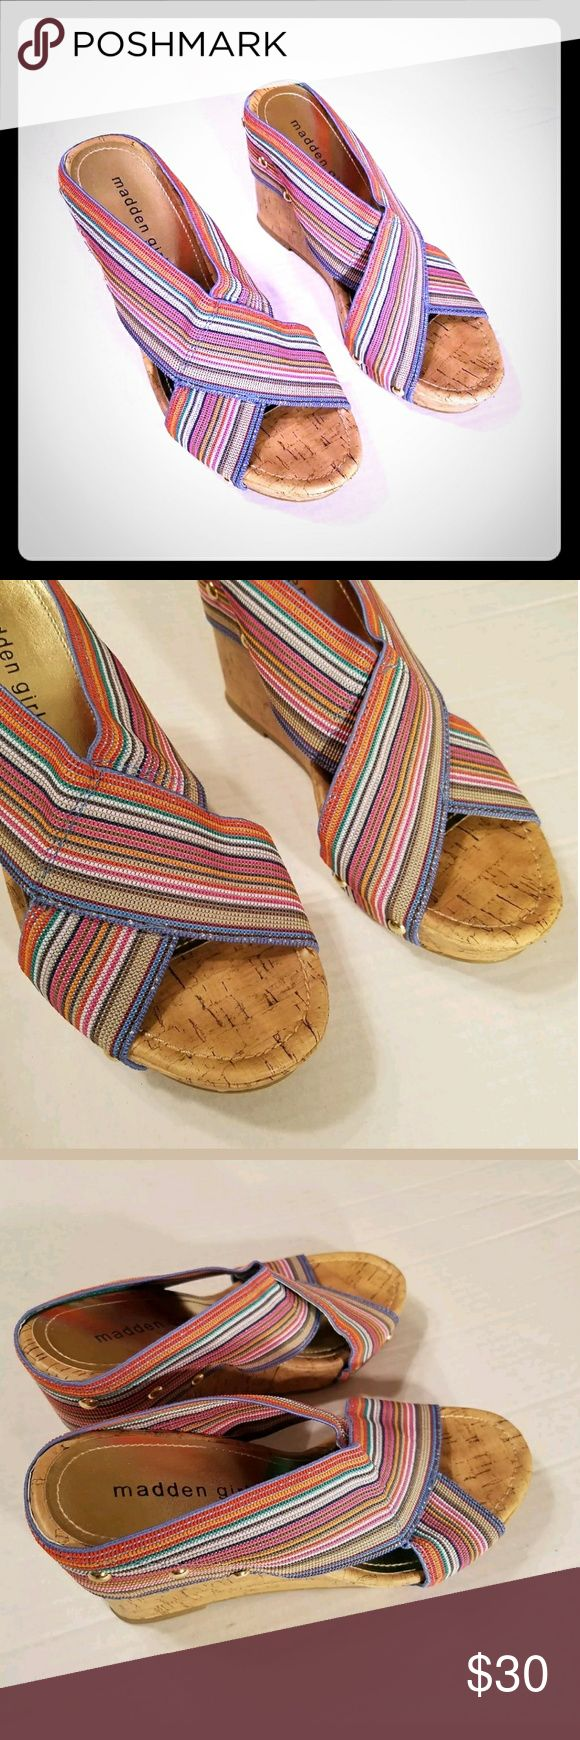 "Sz 7.5M Madden Girl Nautic Cork Platform Wedges Madden Girl Wedge Heels Nautic Cork Multi-Color Criss Cross Stretchy Straps 7M/ 8M  Style Nautic, gold studs, super cute!  NO Size tag, they measure an 7-8M (9.5"" insole)  Heel is 4"" high, platform is 1""  See all pics for details Madden Girl Shoes Wedges"